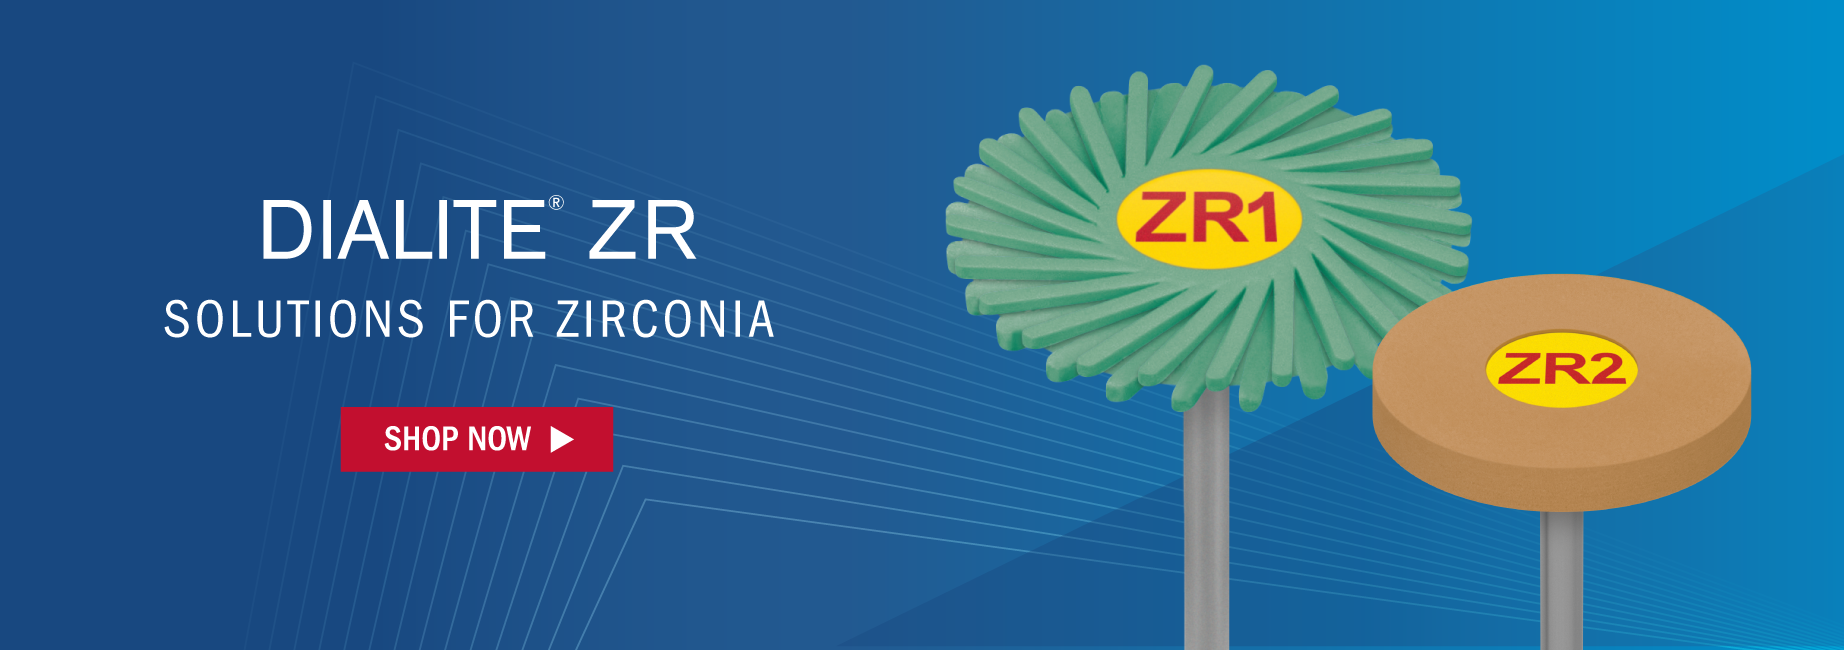 Dialite ZR. Solutions for Zirconia. Shop Now.